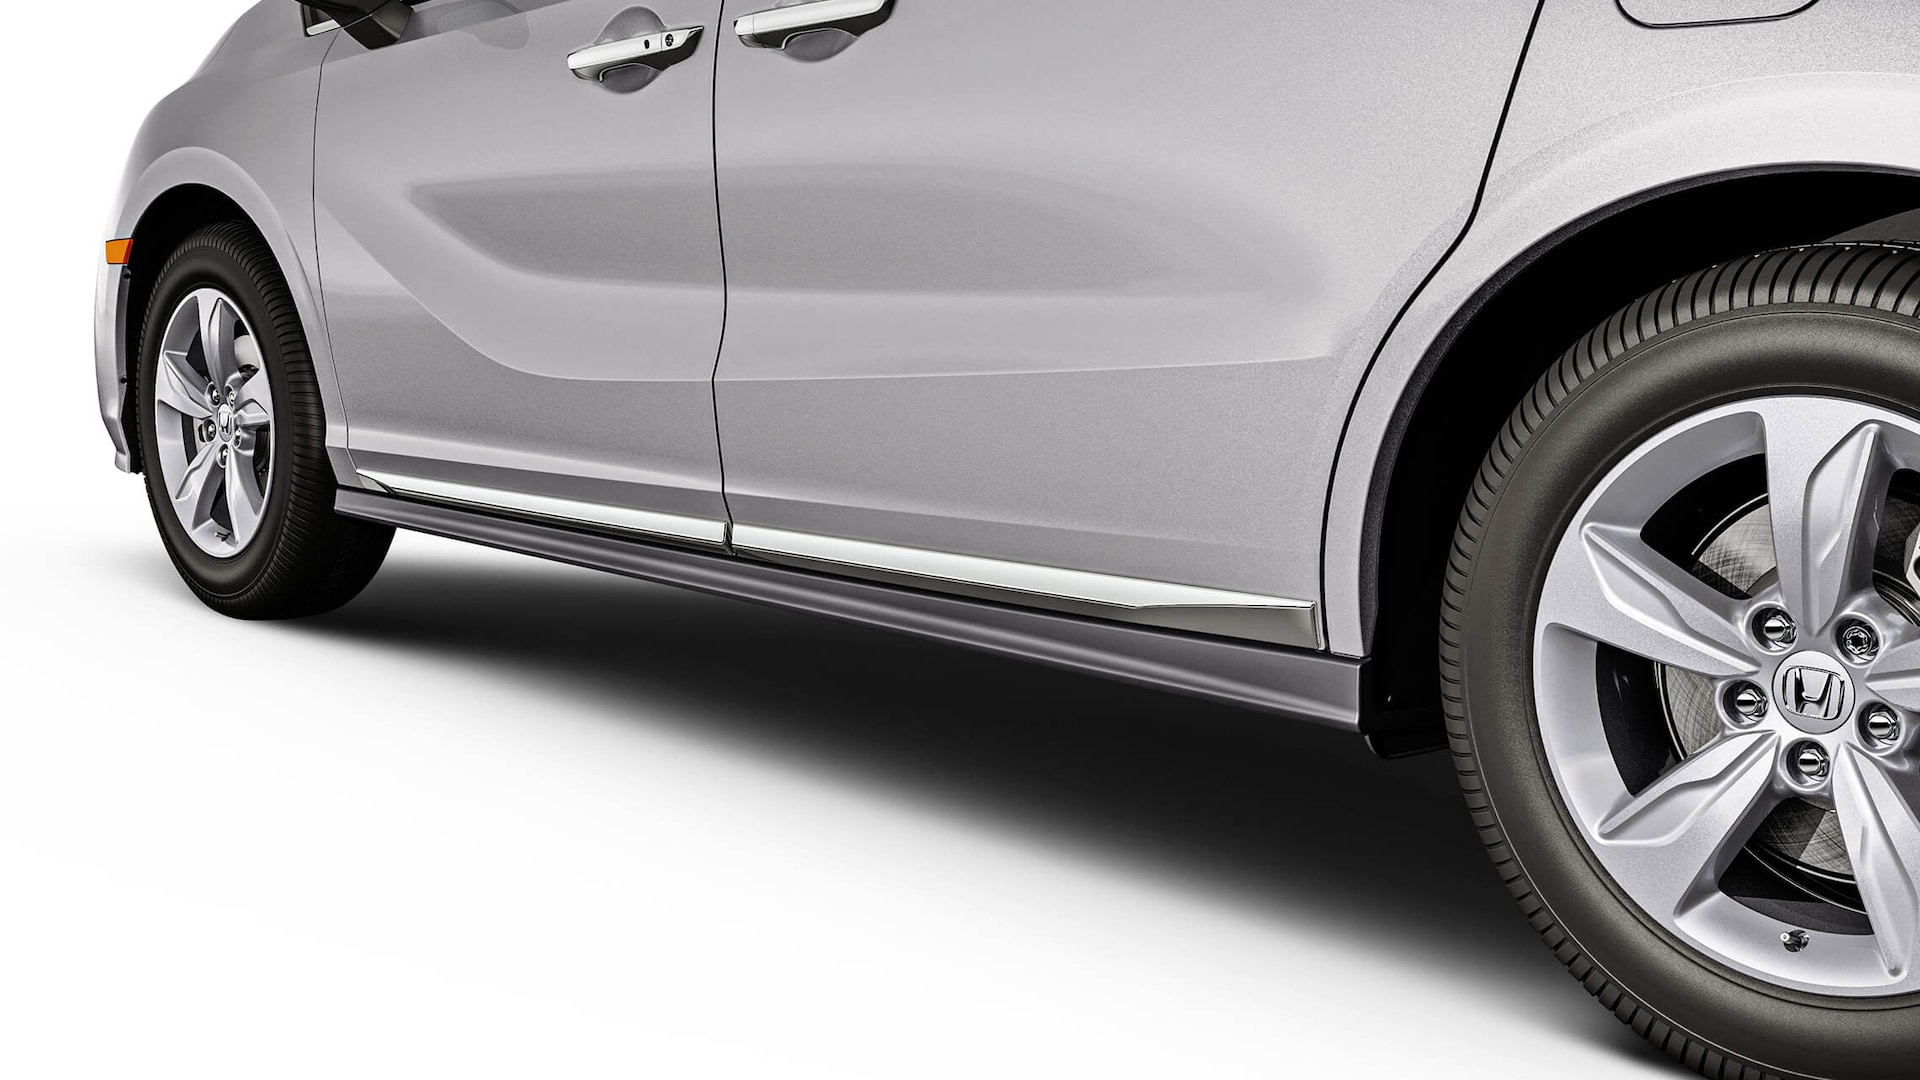 Detail of the 2022 Honda Odyssey accessory chrome door trim.